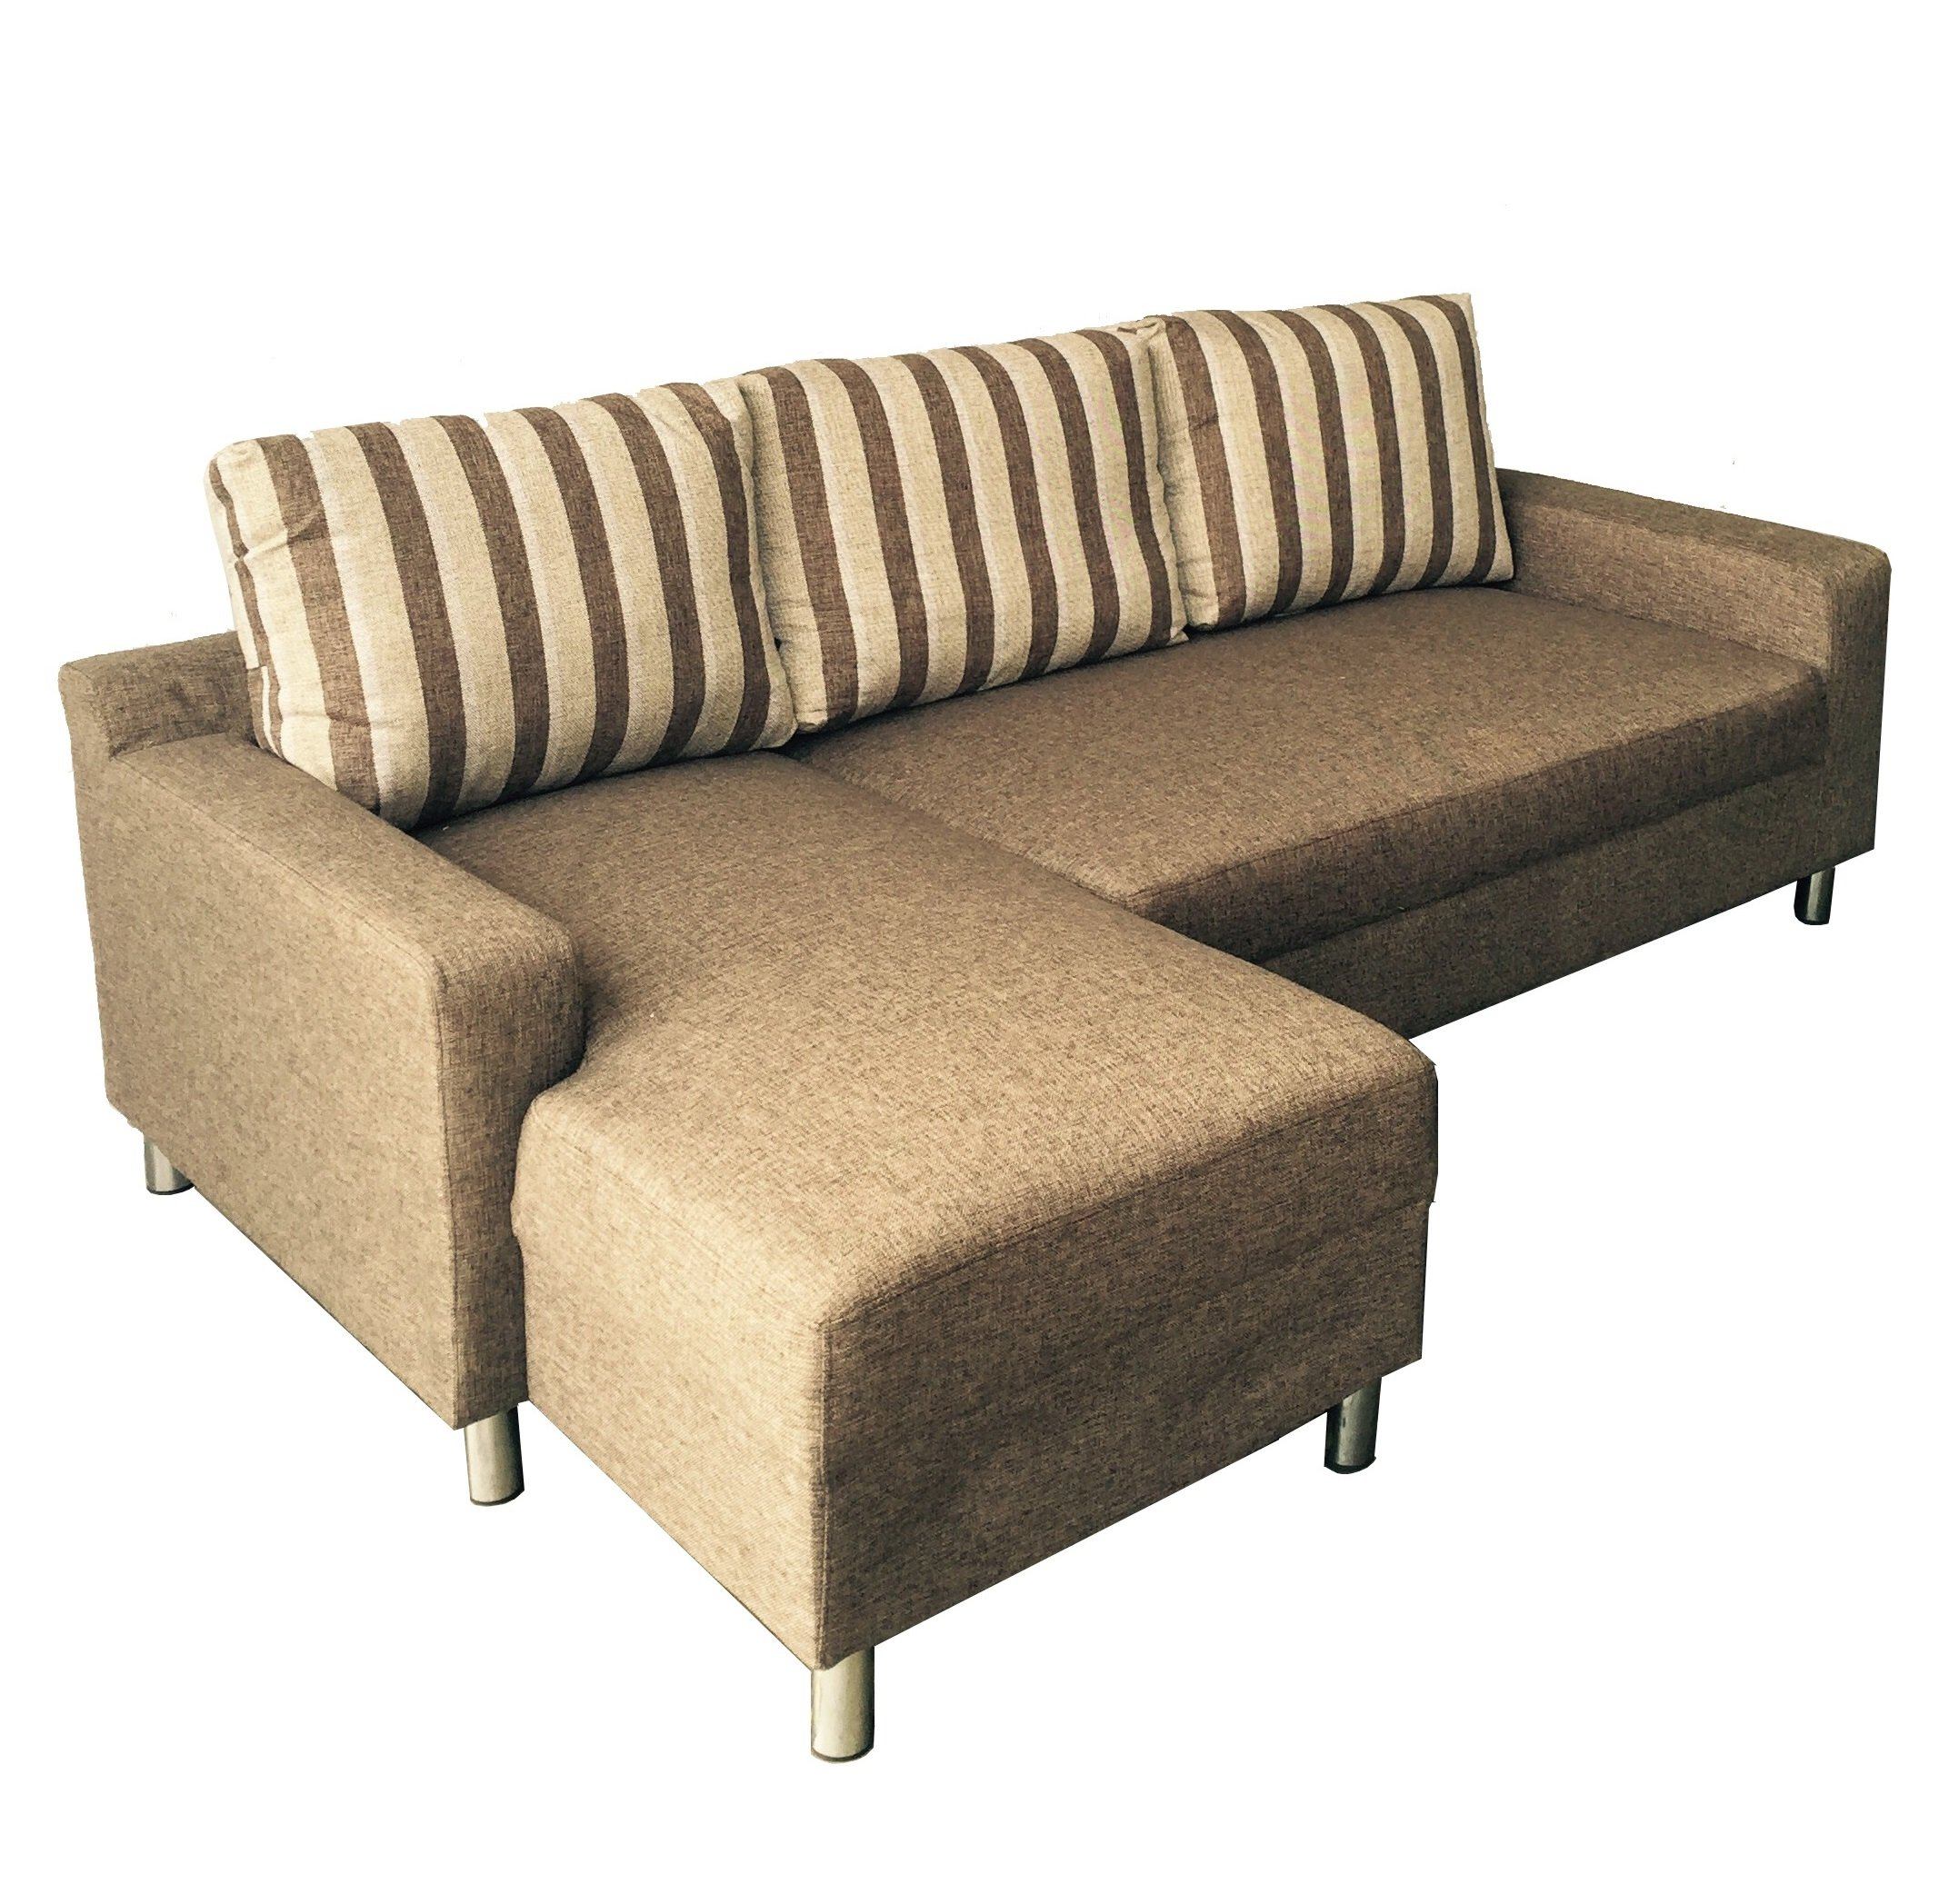 Cheap Sectional Sofa Sleeper Bed find Sectional Sofa Sleeper Bed